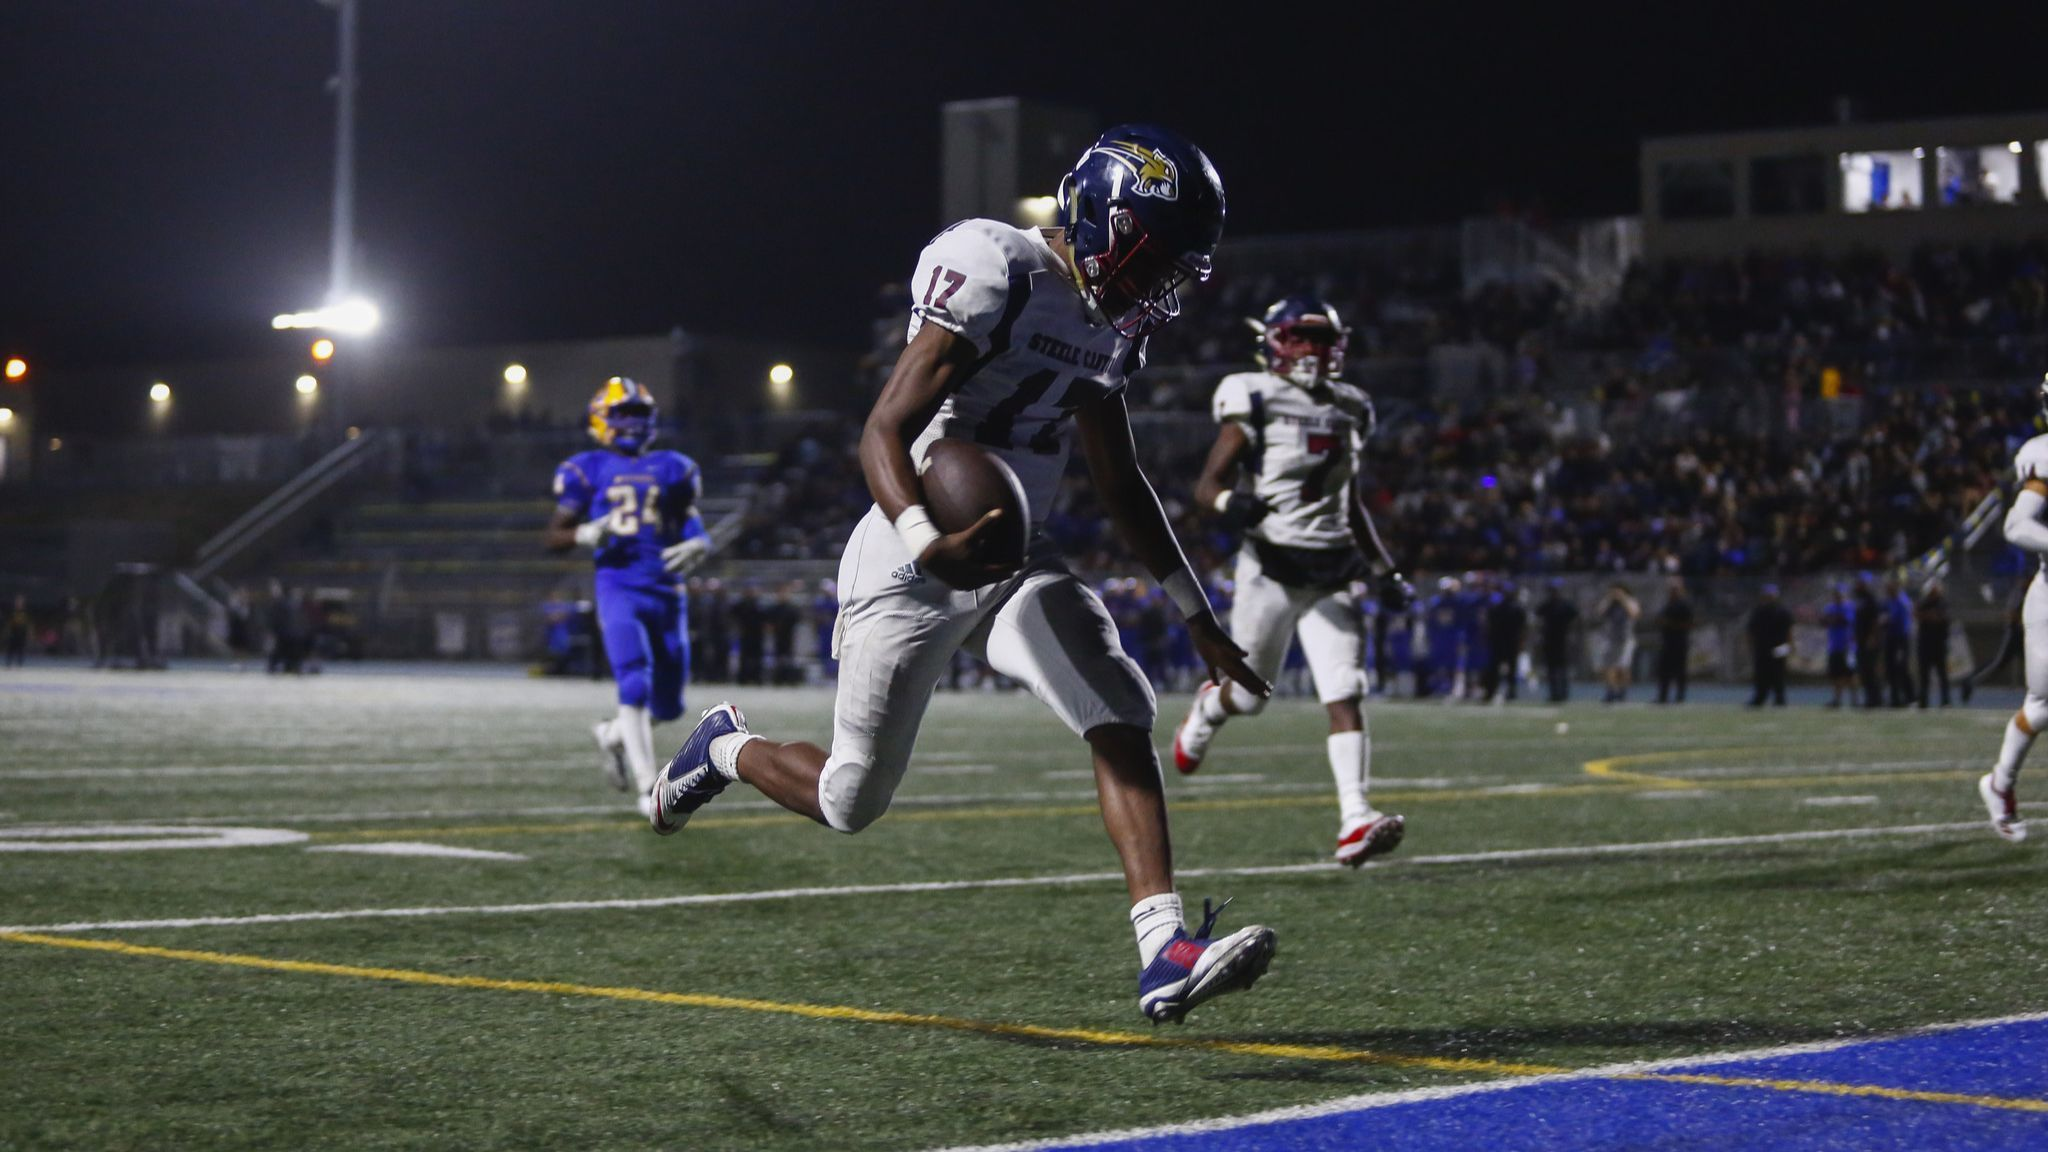 Alex Spanos All-Star Classic features talented rosters